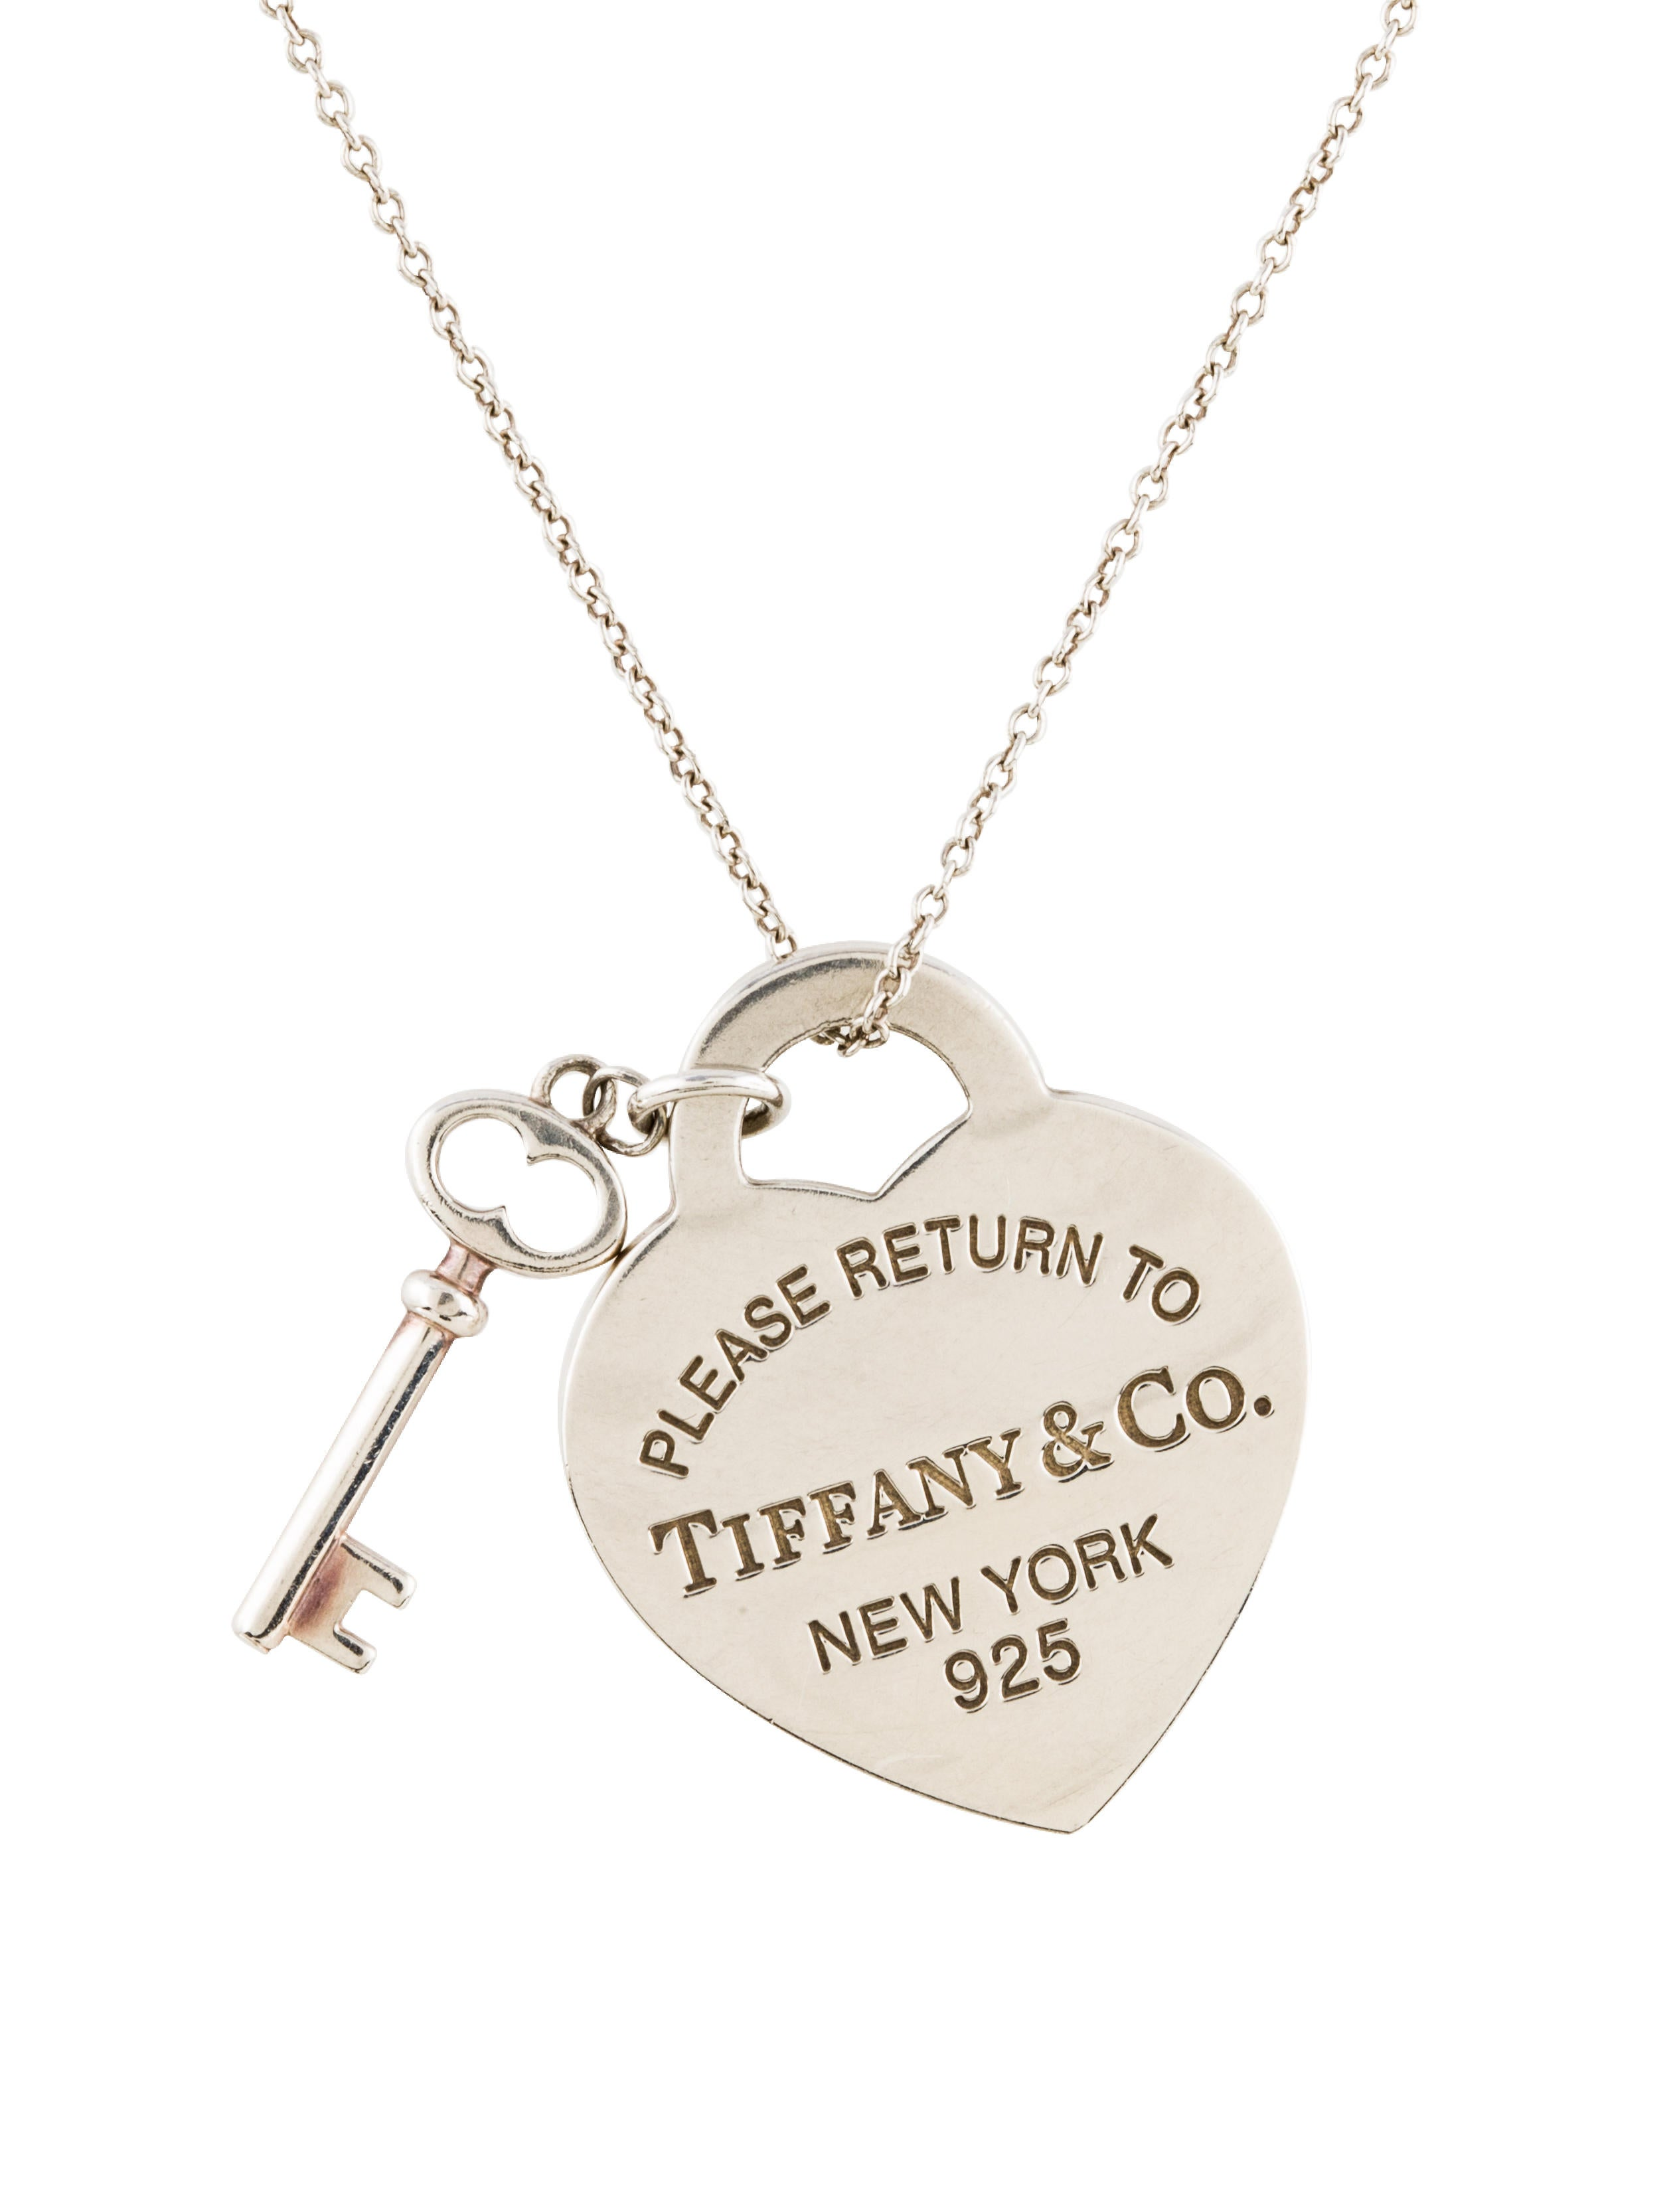 Tiffany co heart tag with key pendant necklace necklaces heart tag with key pendant necklace aloadofball Gallery